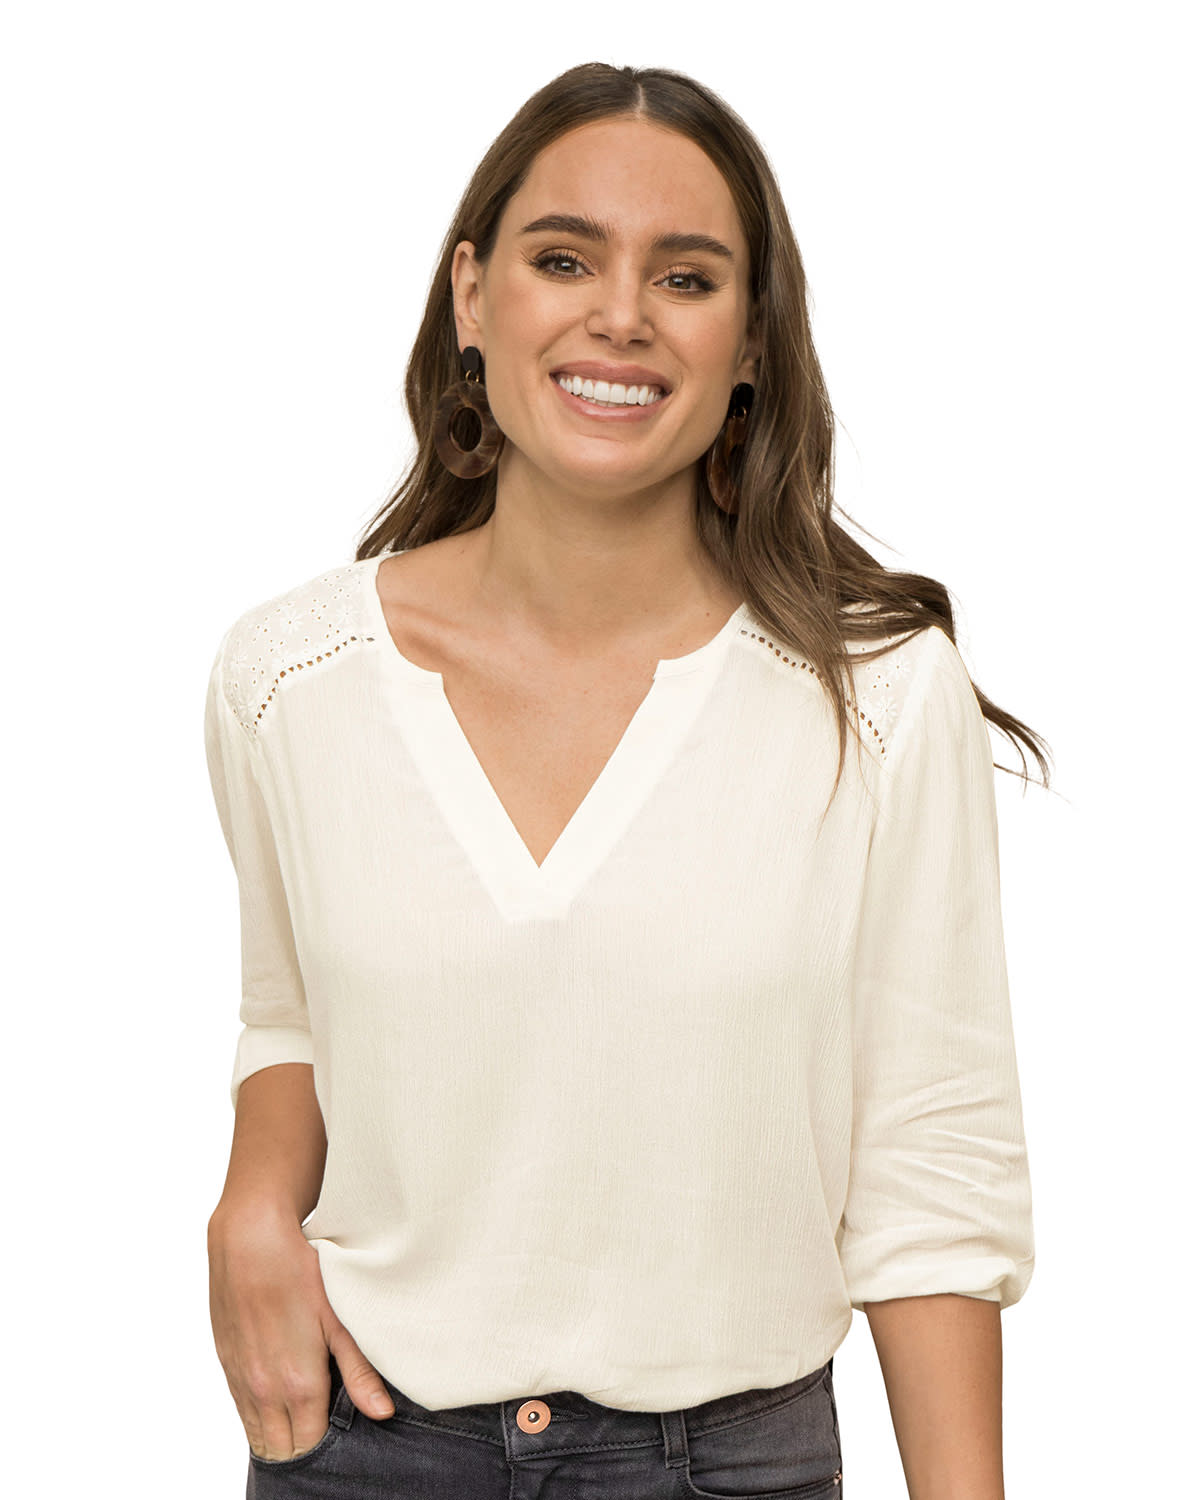 ¾ Sleeve Top with Eyelet Shoulder Accents